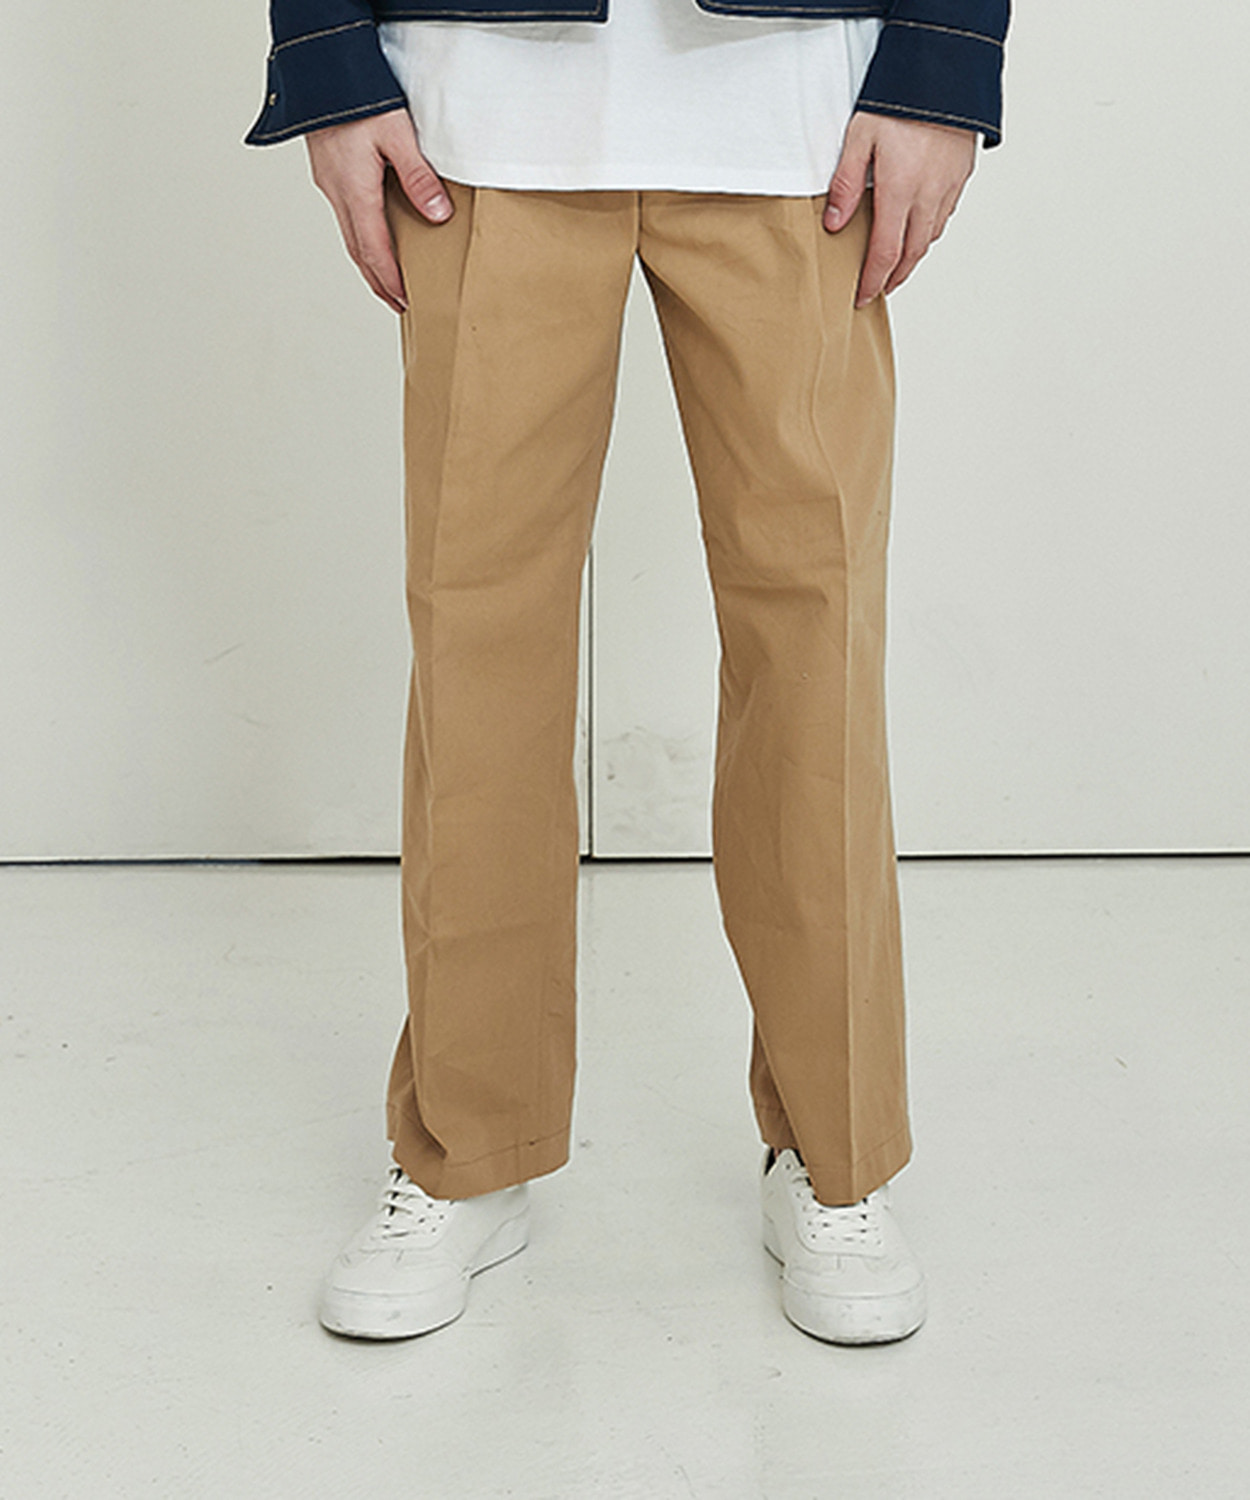 Overfit Cotton Pants (Beige)